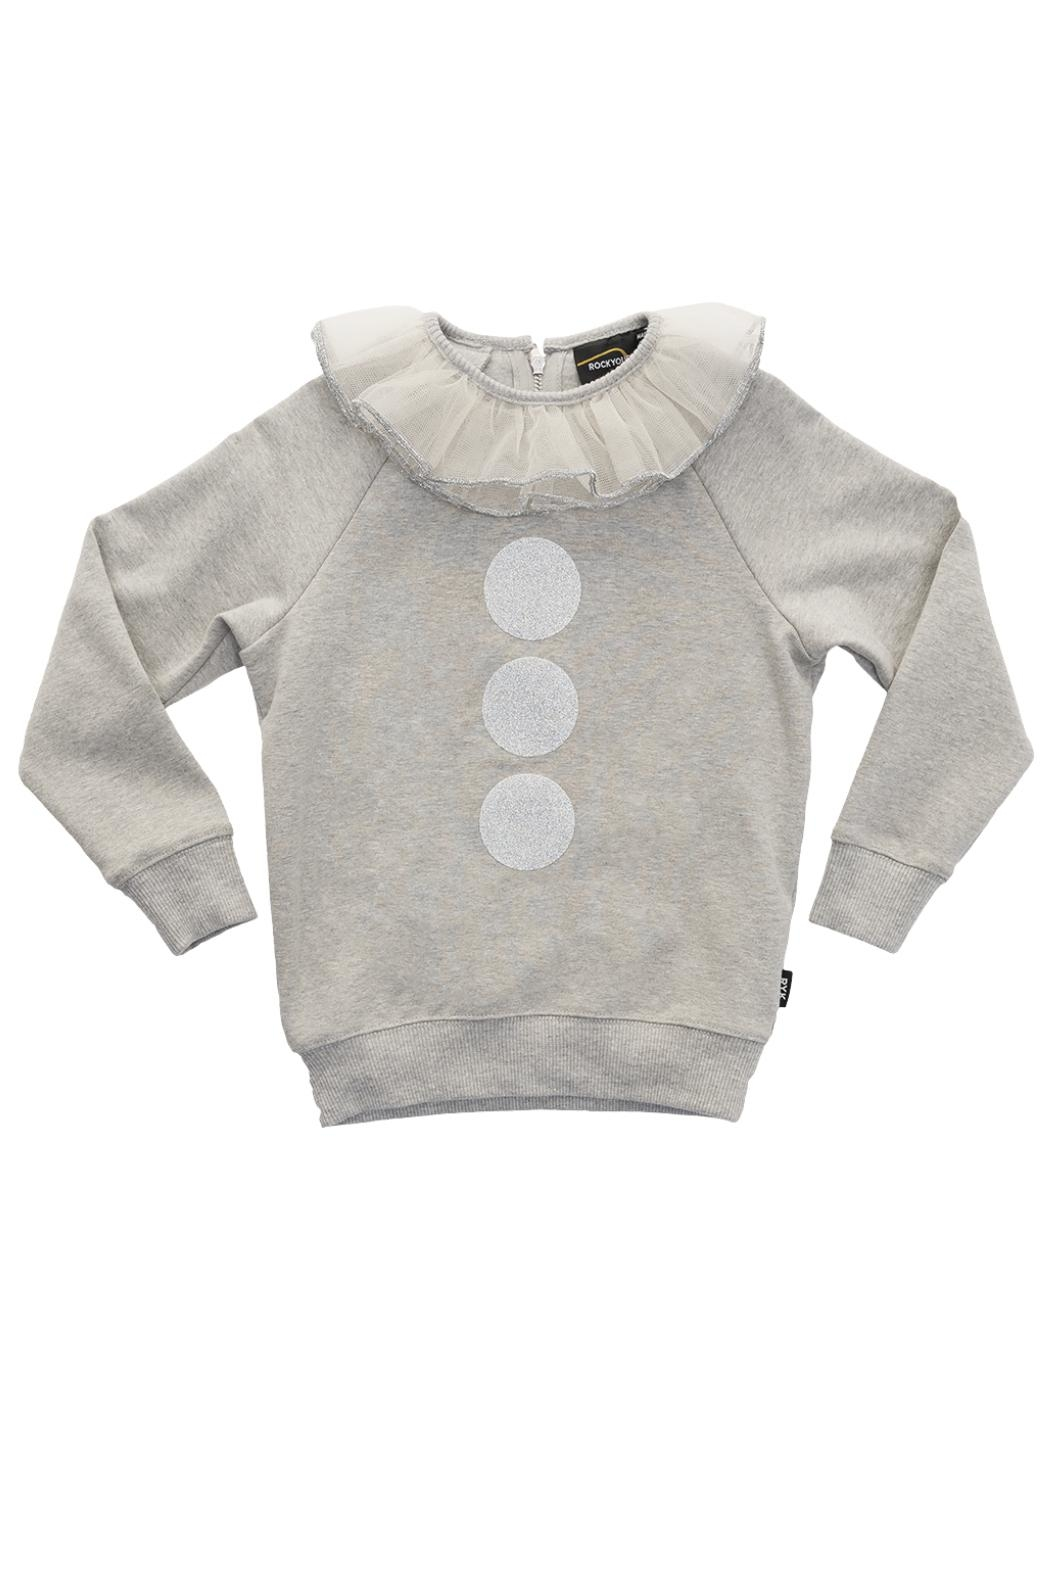 Rock Your Baby Big Top Jumper - Front Cropped Image